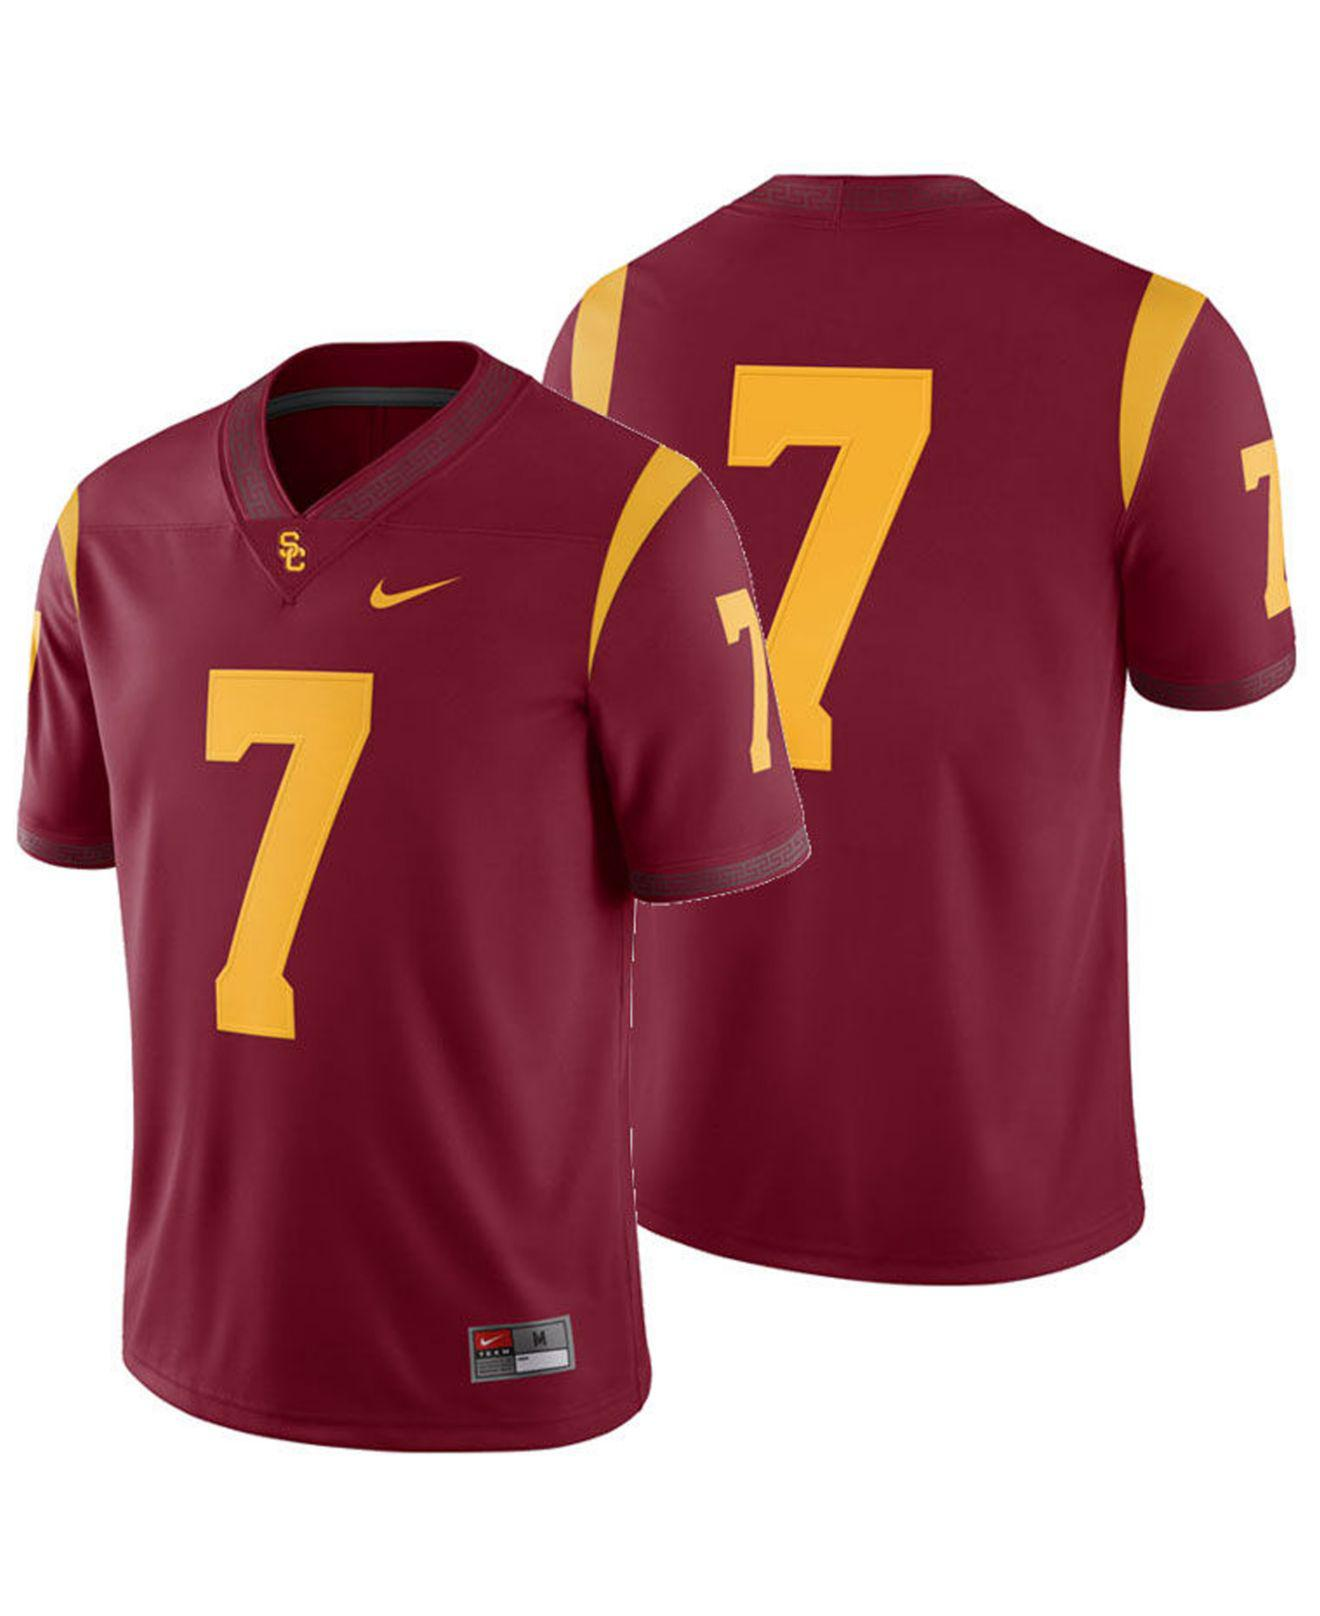 847ceafdd77 Lyst - Nike Usc Trojans Football Replica Game Jersey in Red for Men